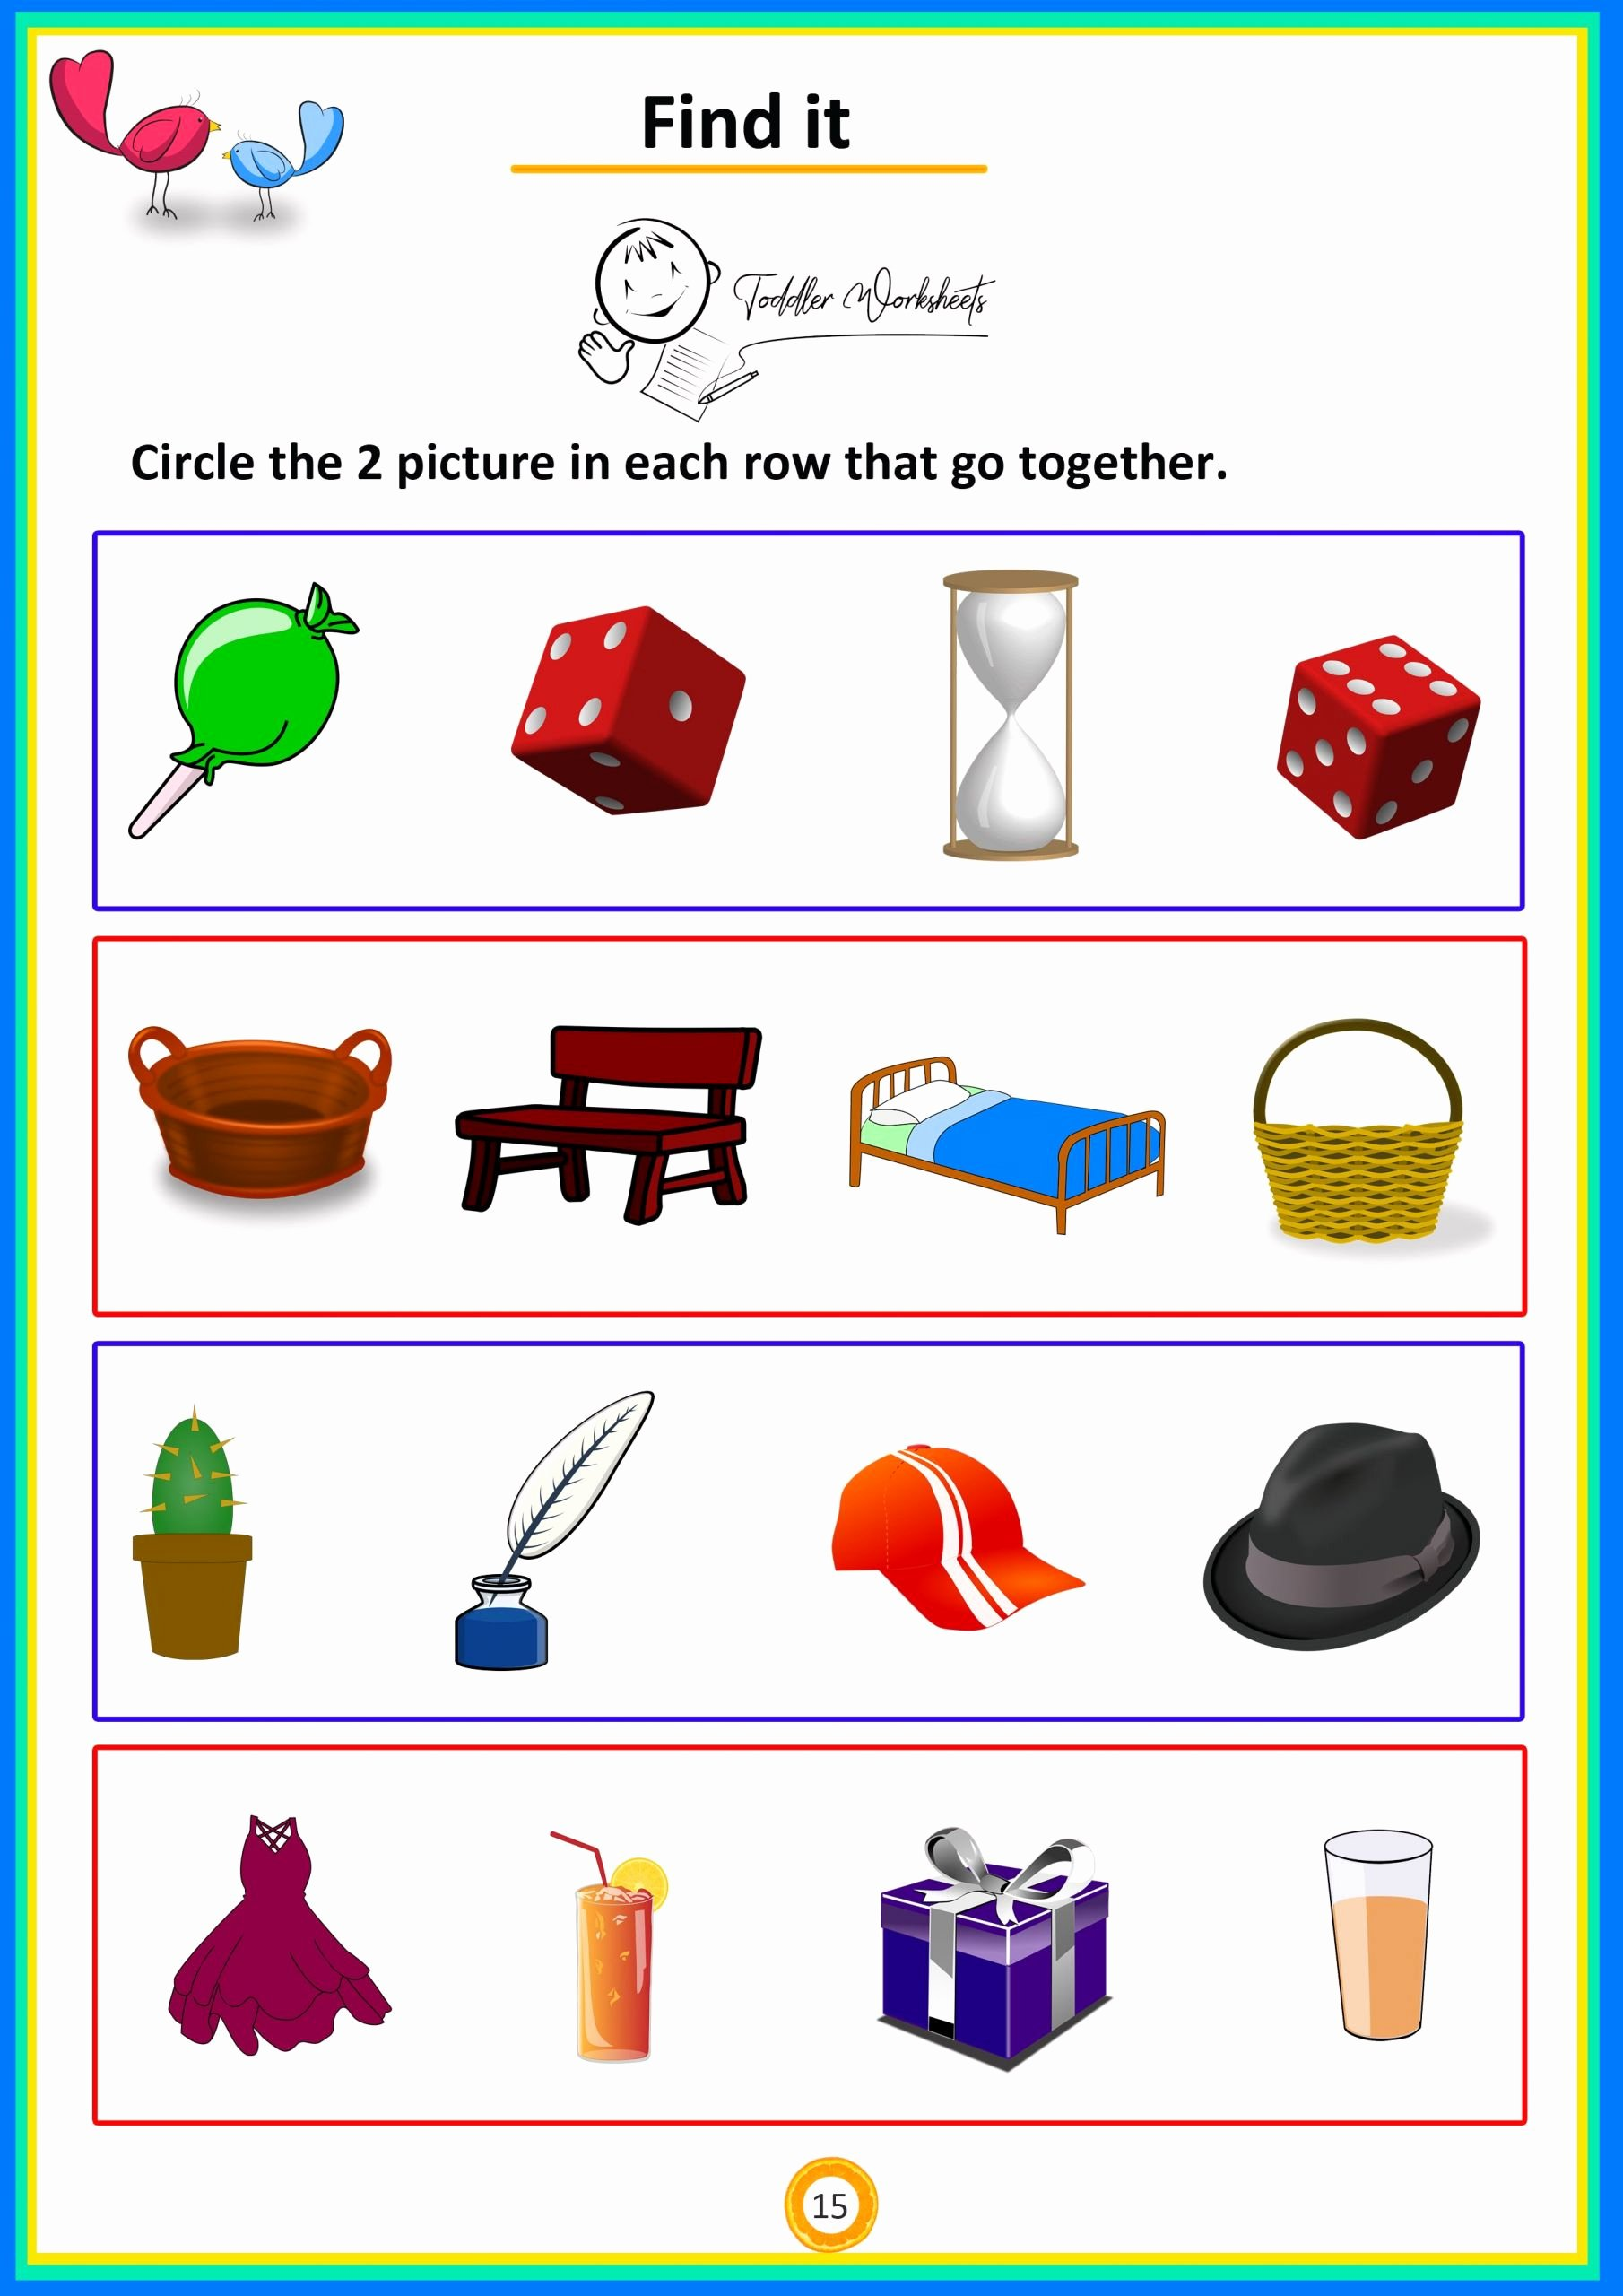 Addition Worksheets for Preschoolers Lovely Summer Math Worksheets Preschool Simple for